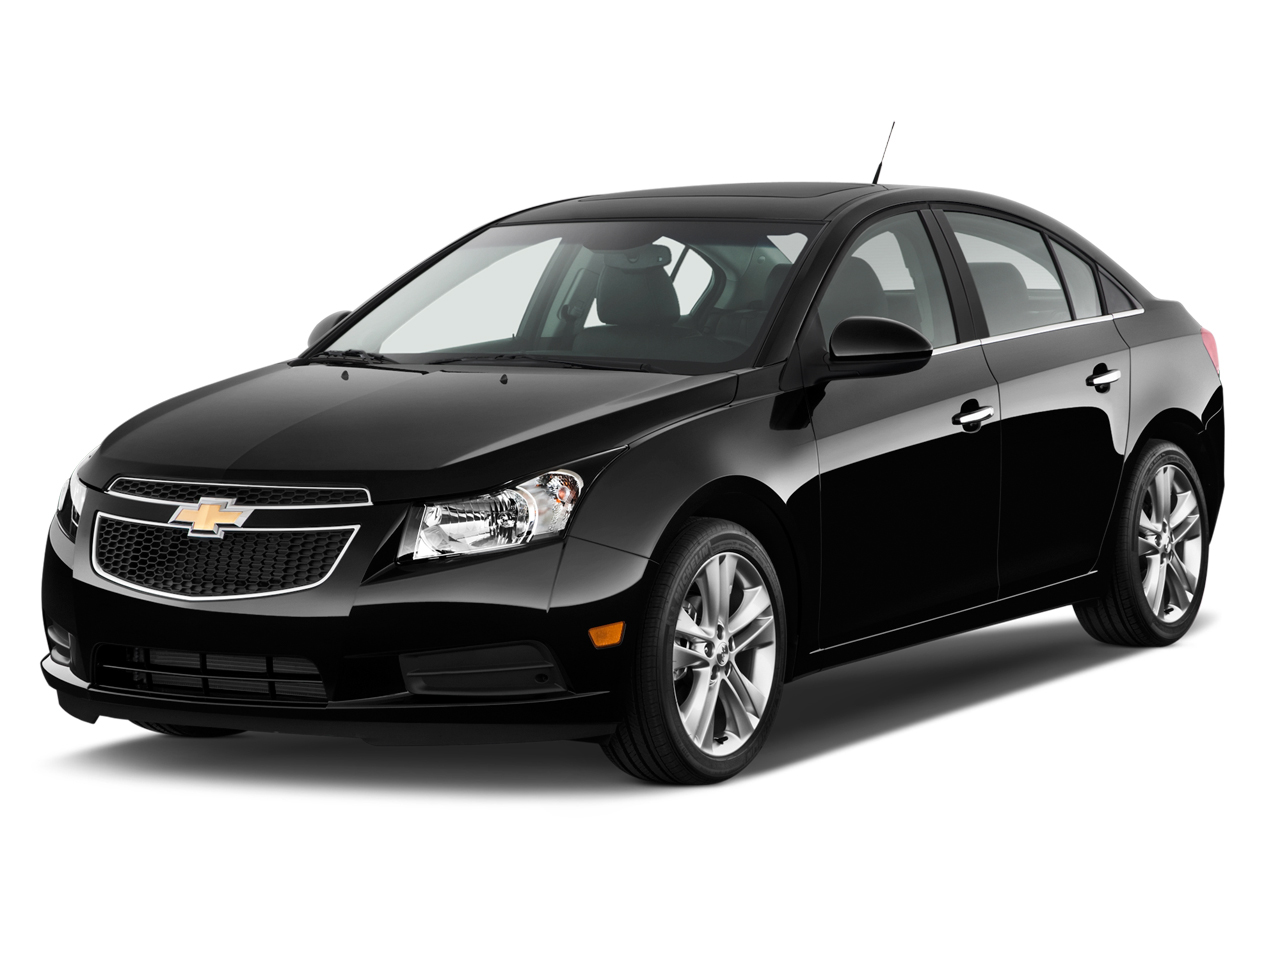 2012 Chevrolet Cruze Chevy Review Ratings Specs Prices And Photos The Car Connection